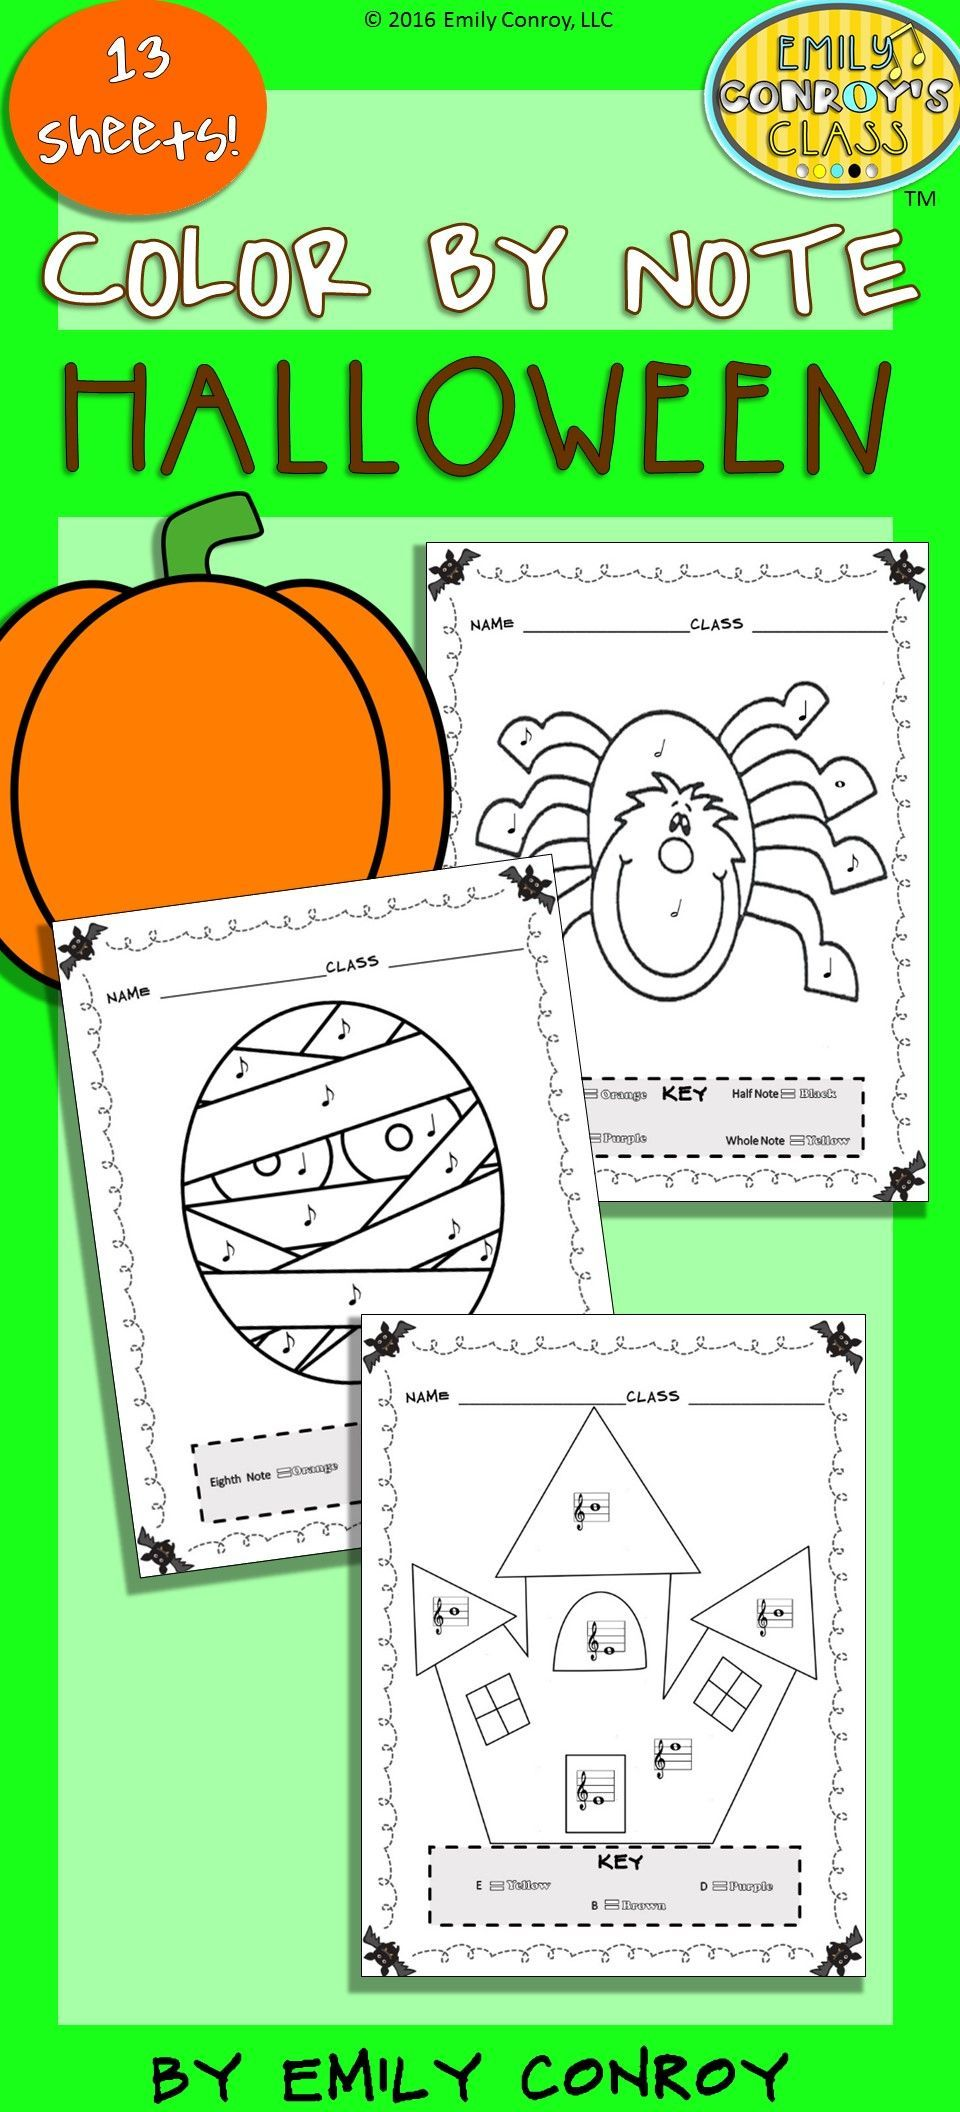 Music Coloring Sheets (Color By Note Halloween) | Elementary music ...